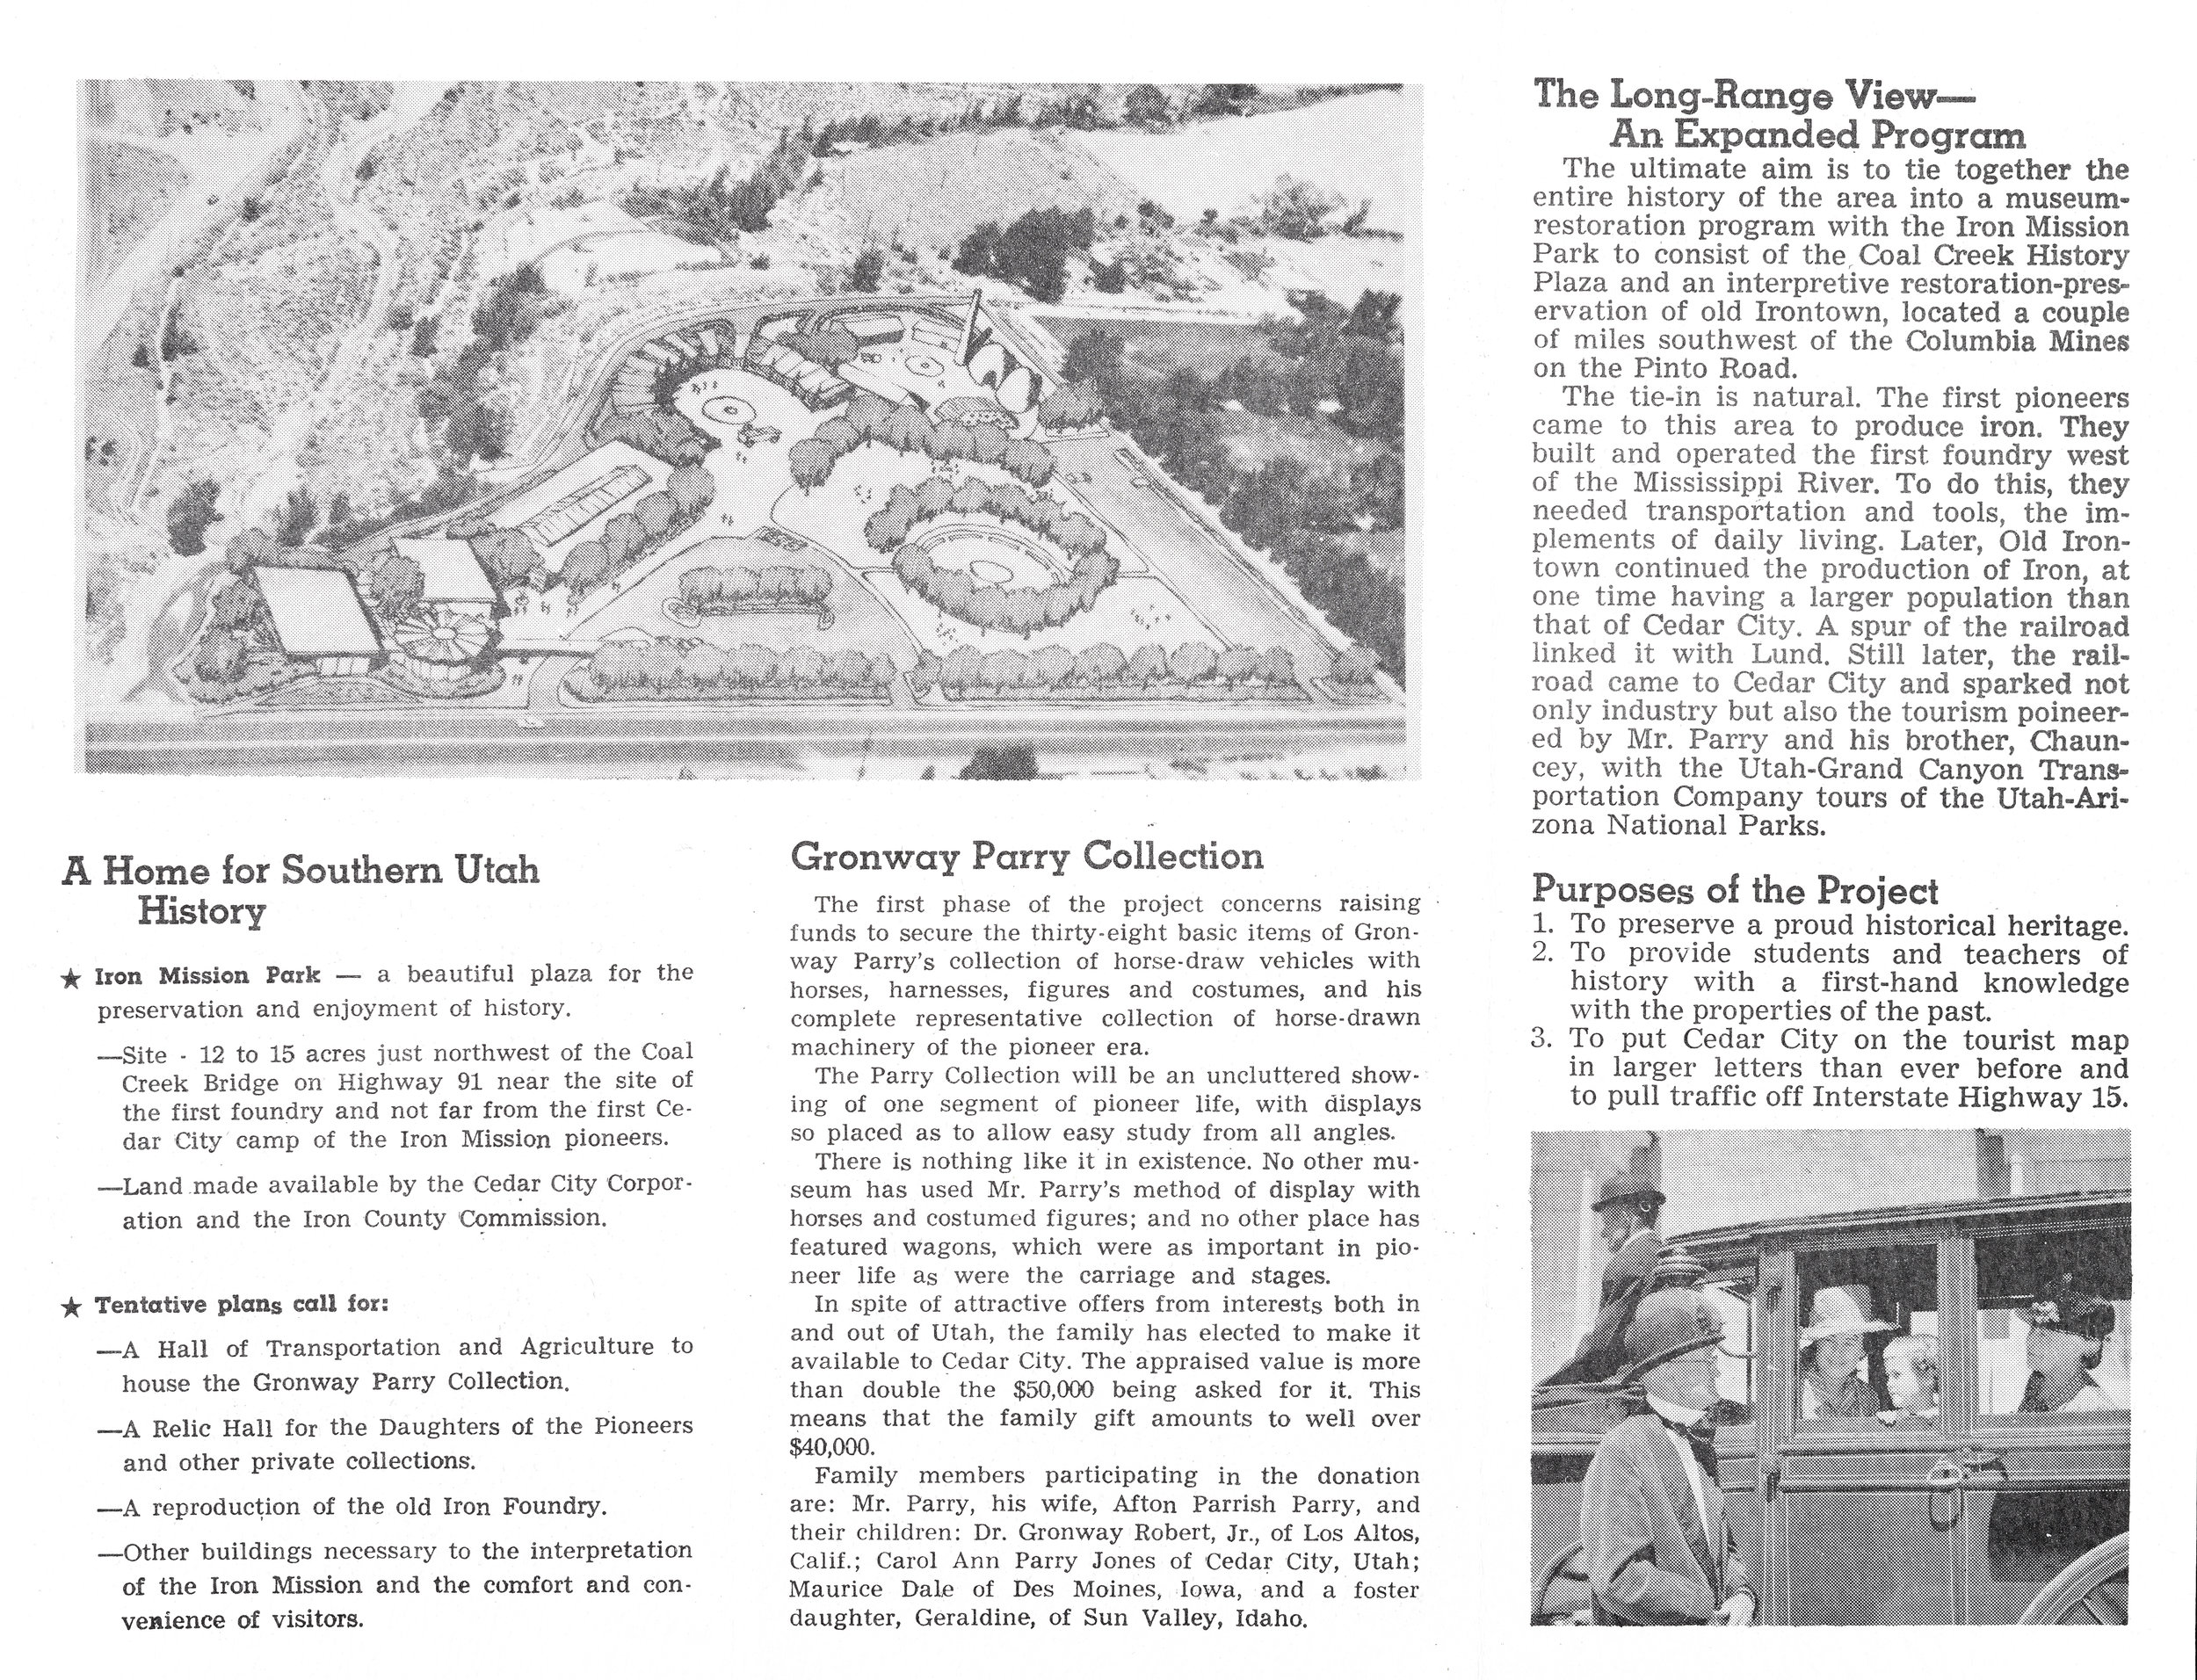 An early brochure promoting support for the park.